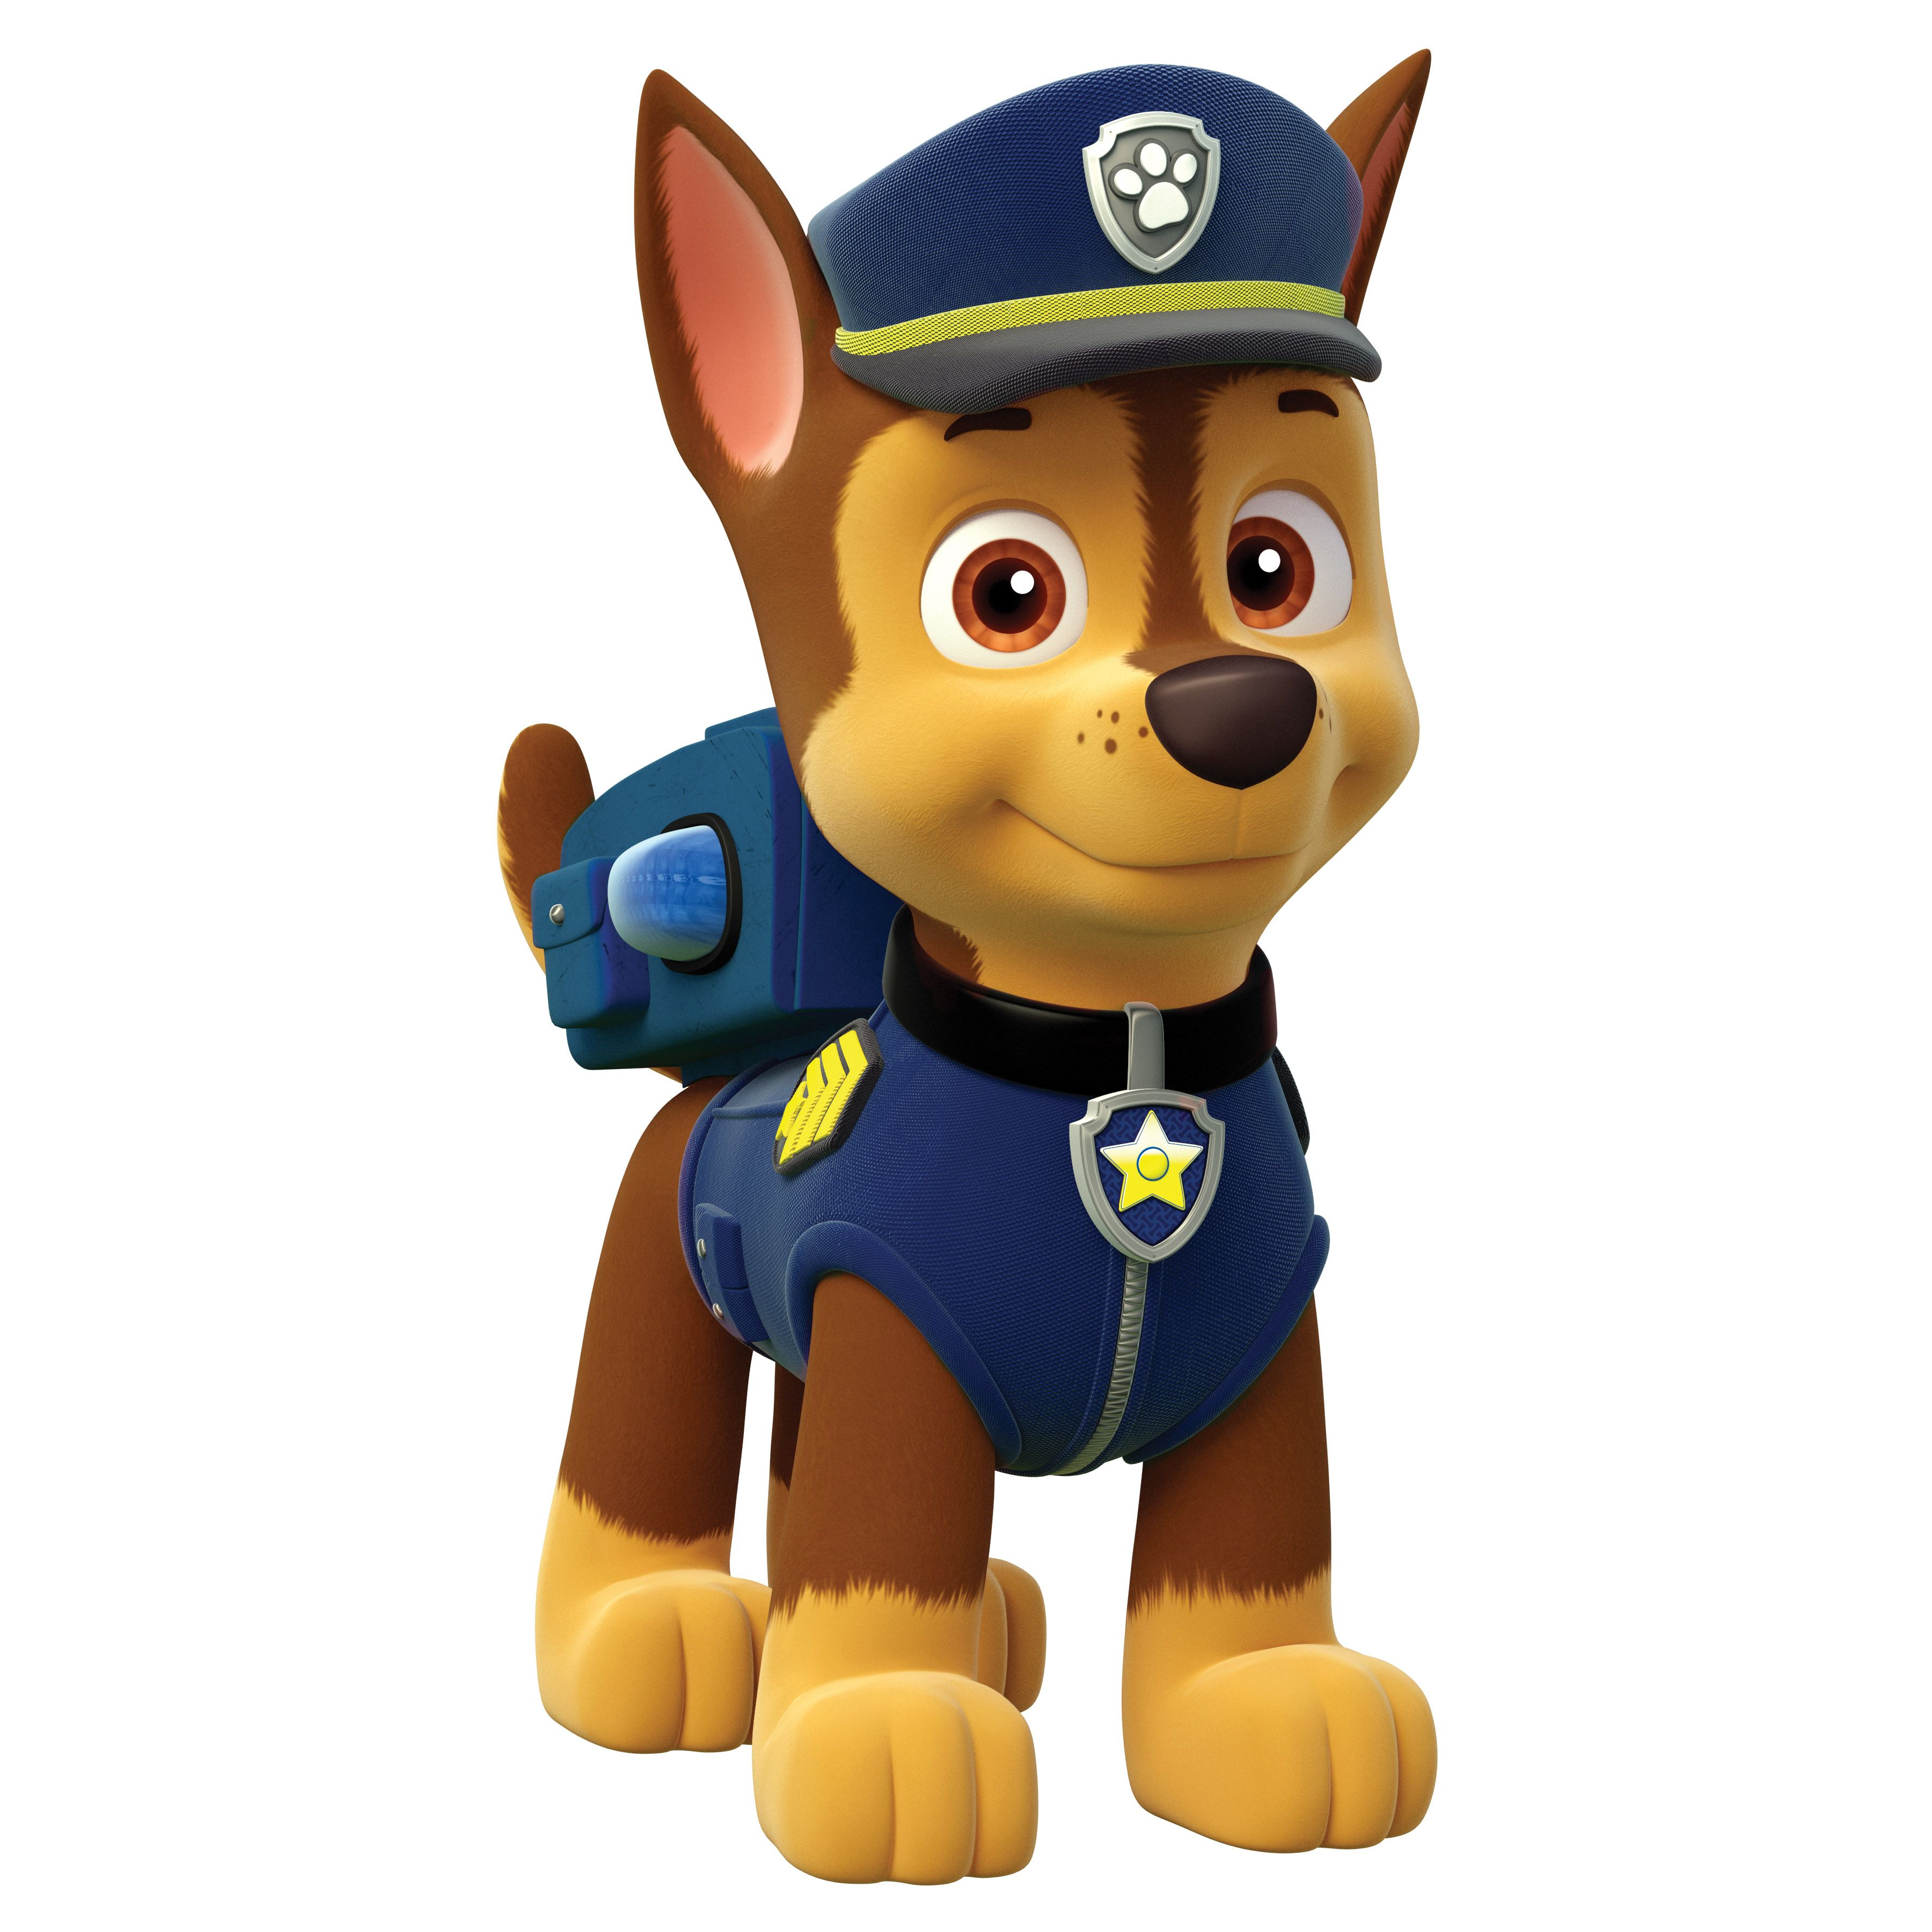 Chase Paw Patrol Clipart Clipart Paw Patrol Coloring Paw Patrol Characters Paw Patrol Printables